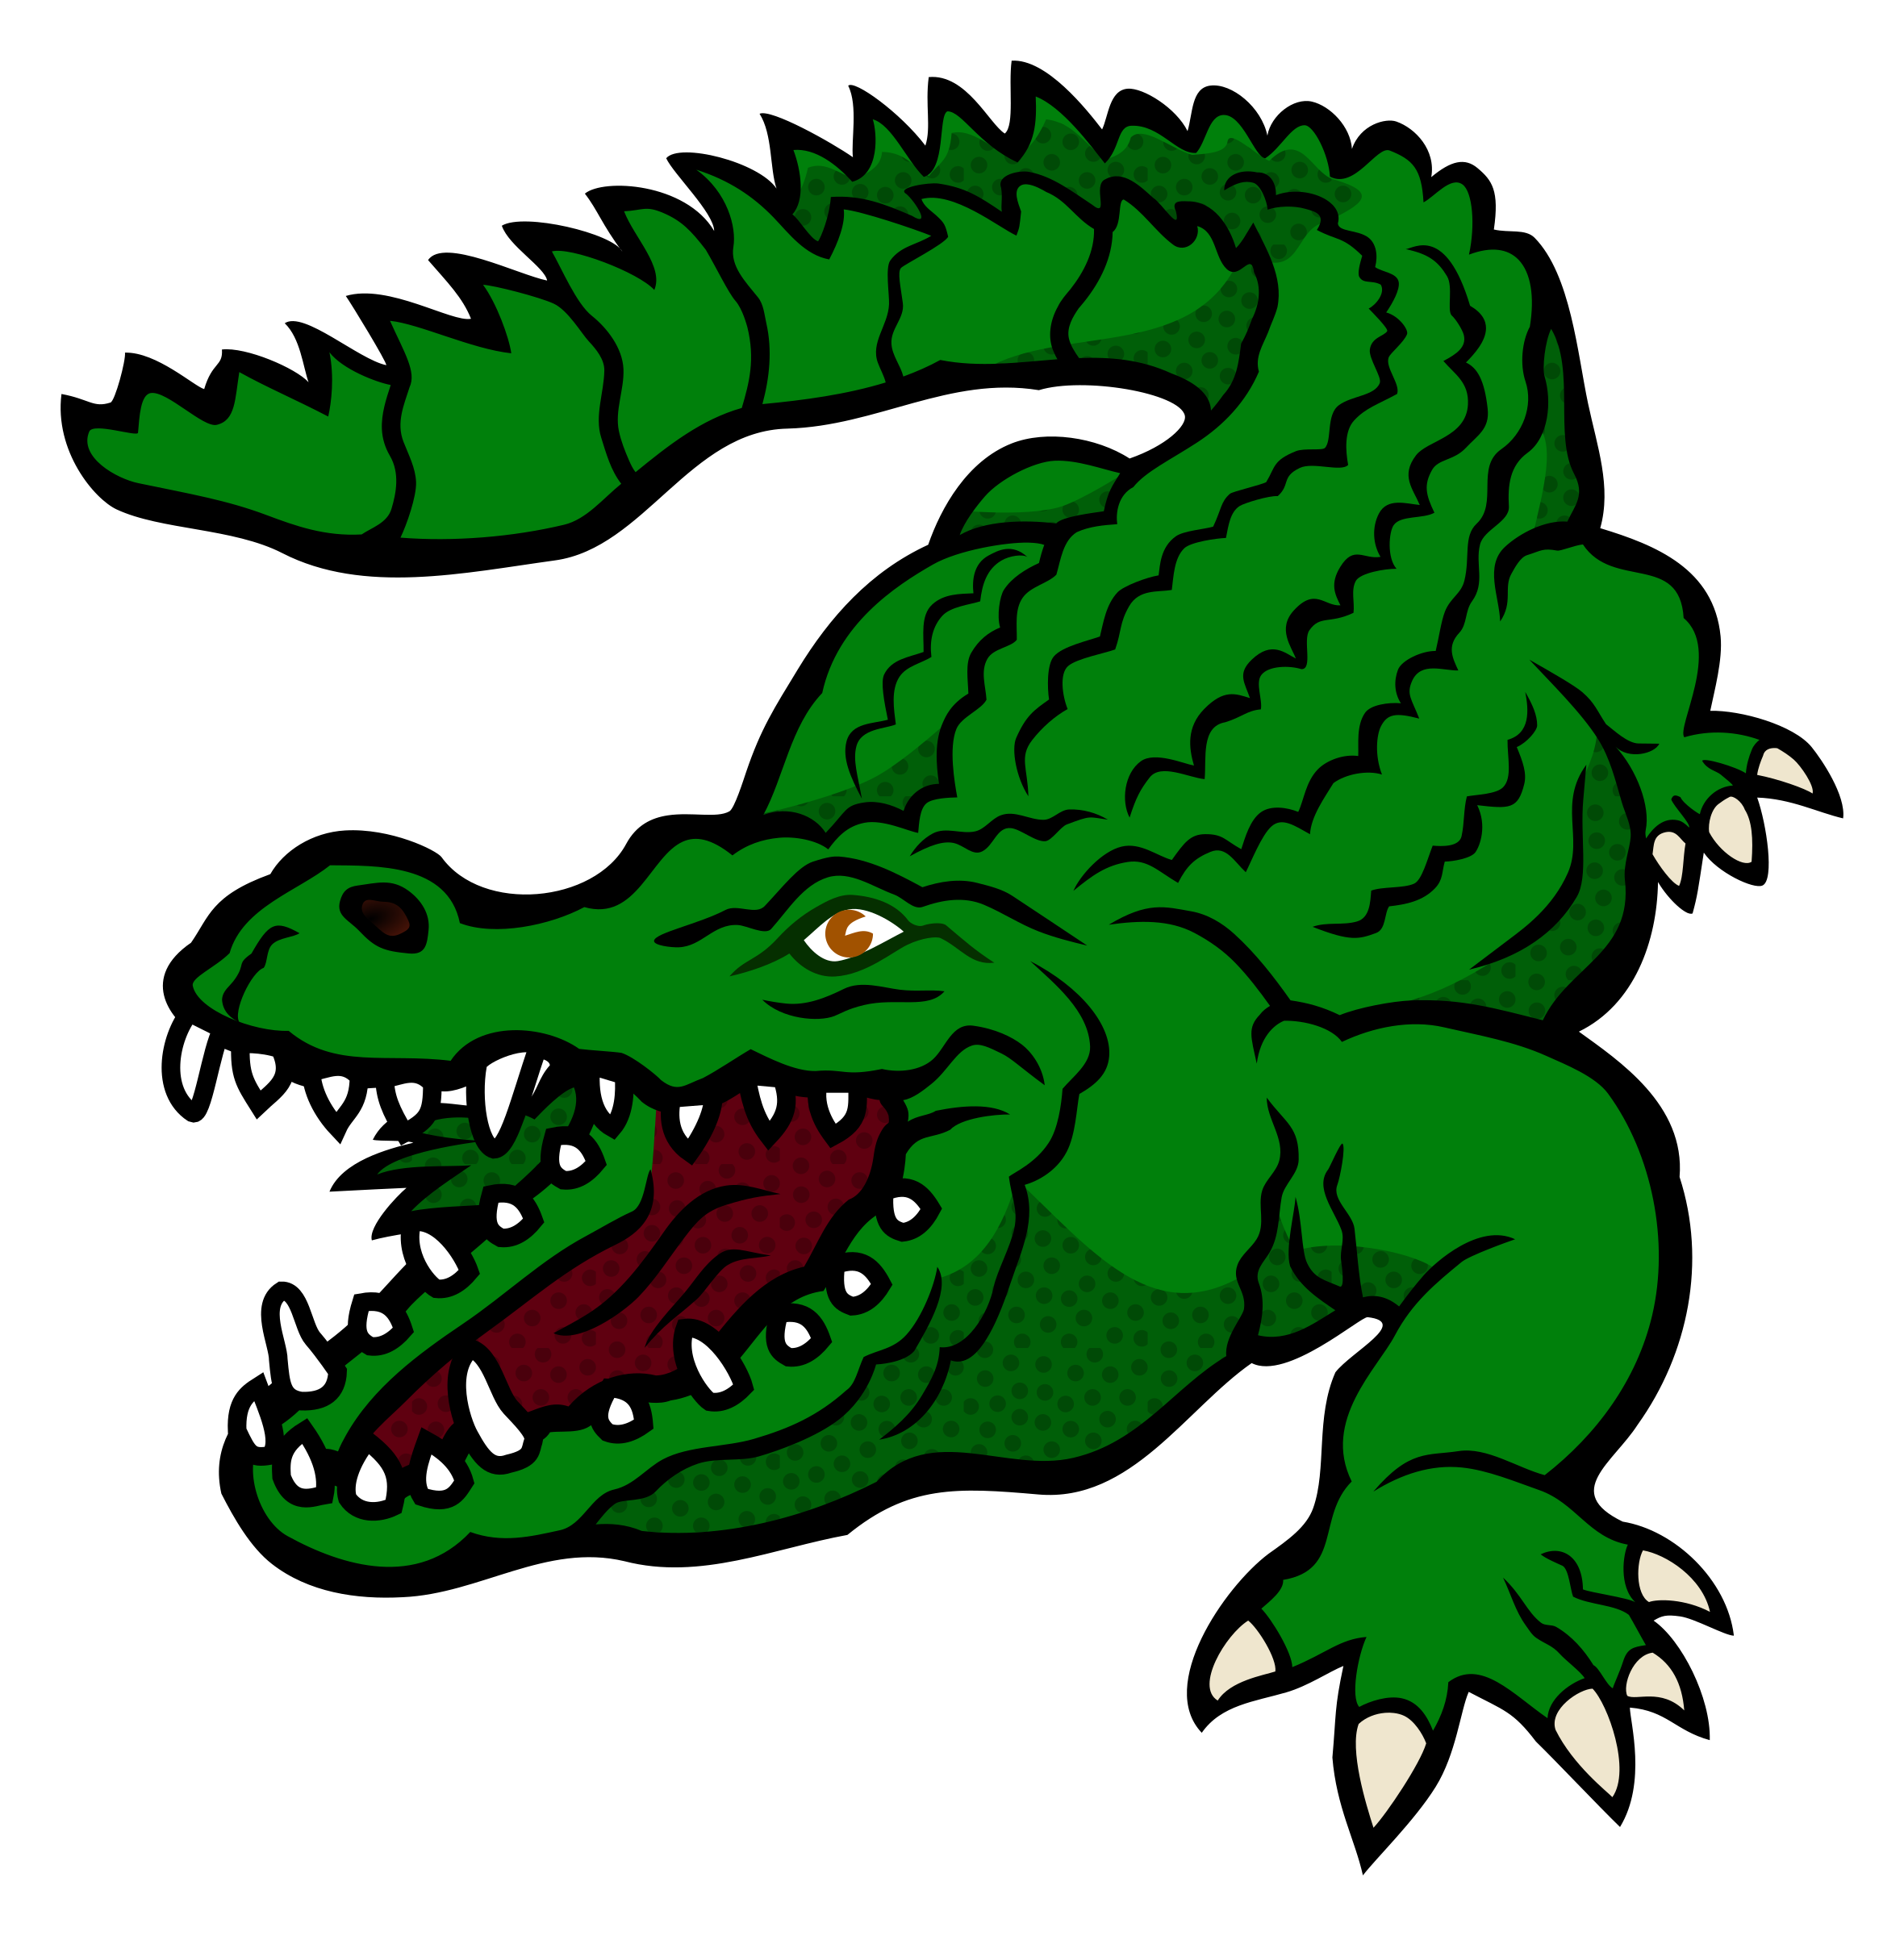 Florida gators football clipart free stock Gator Silhouette at GetDrawings.com | Free for personal use Gator ... stock